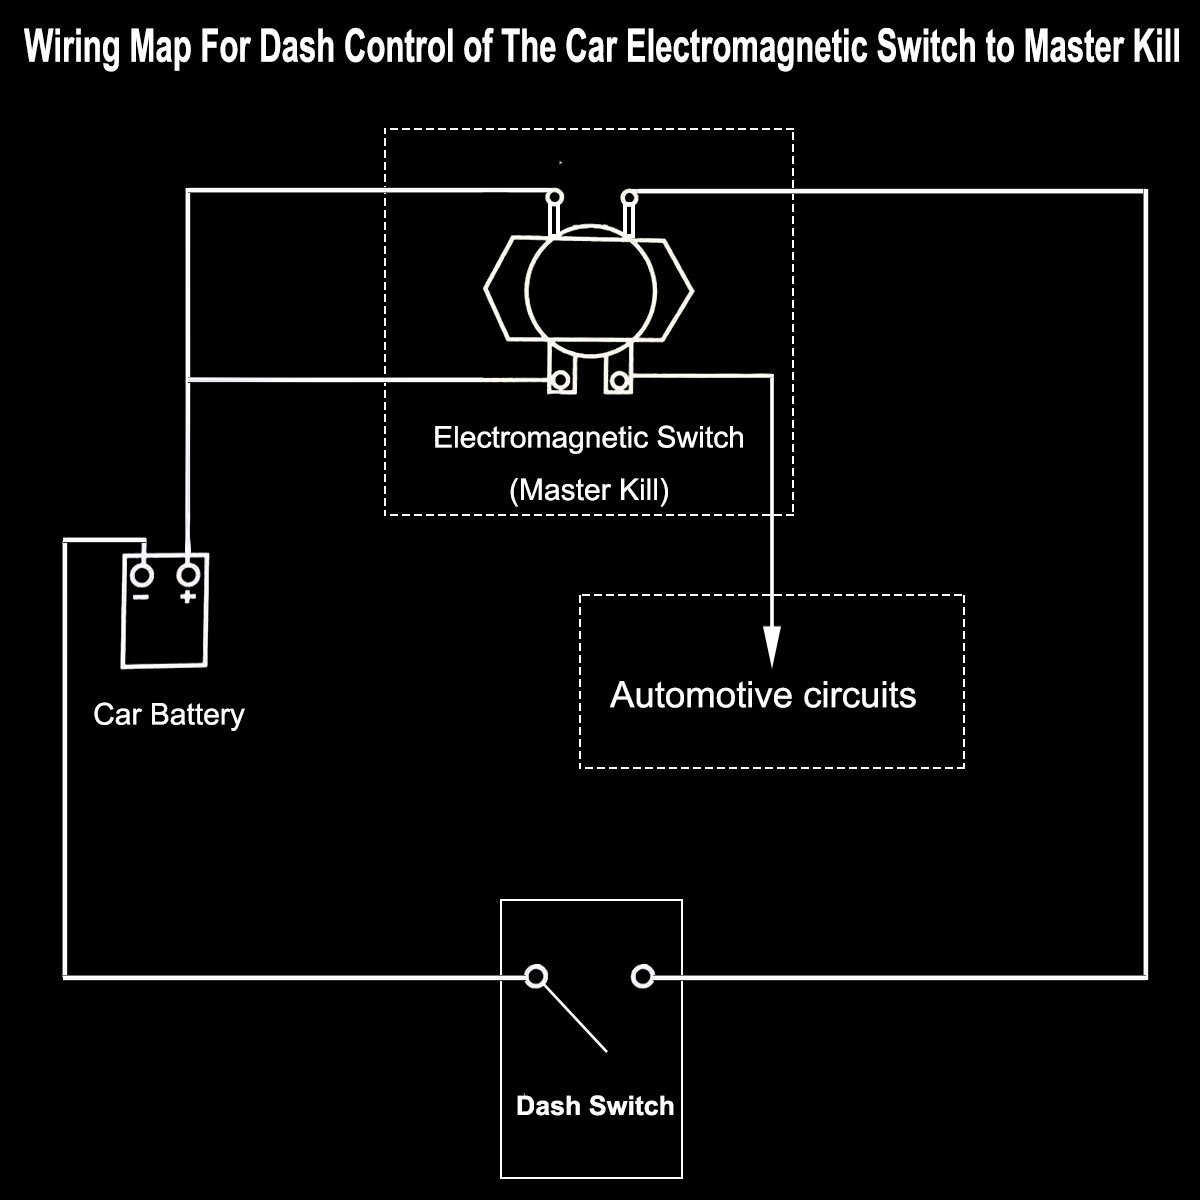 Truck Battery Switch Electromagnetic Disconnector E A Circuit Diagram Of An Electromagnet Kylin Dc 24v Power One Button Control On Dash Master Kill System Full Suite